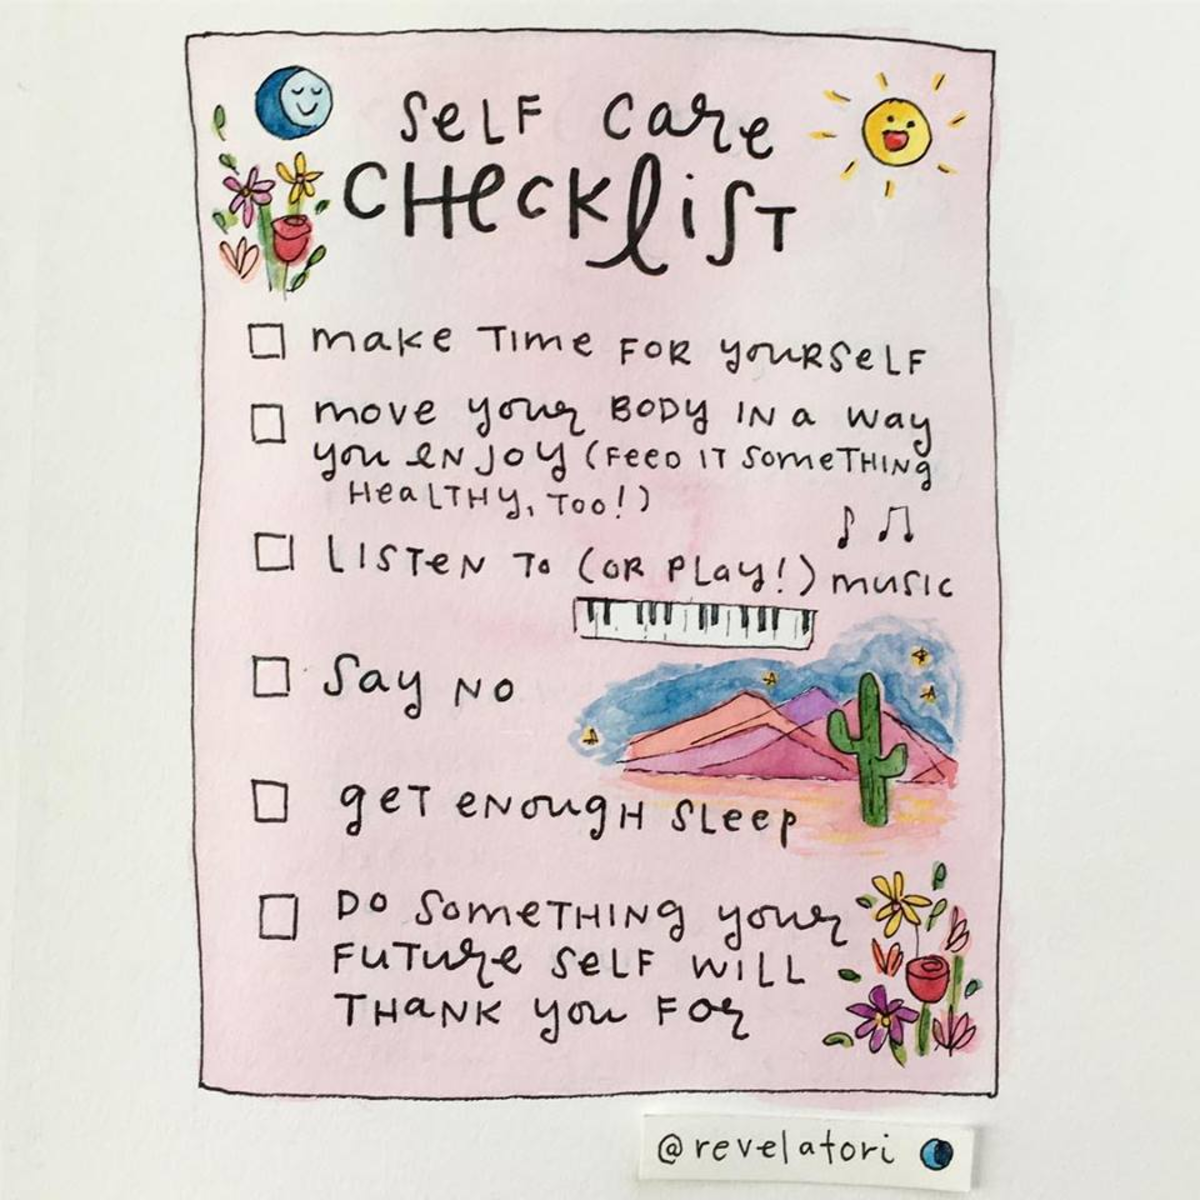 Some great self care tips ❤️